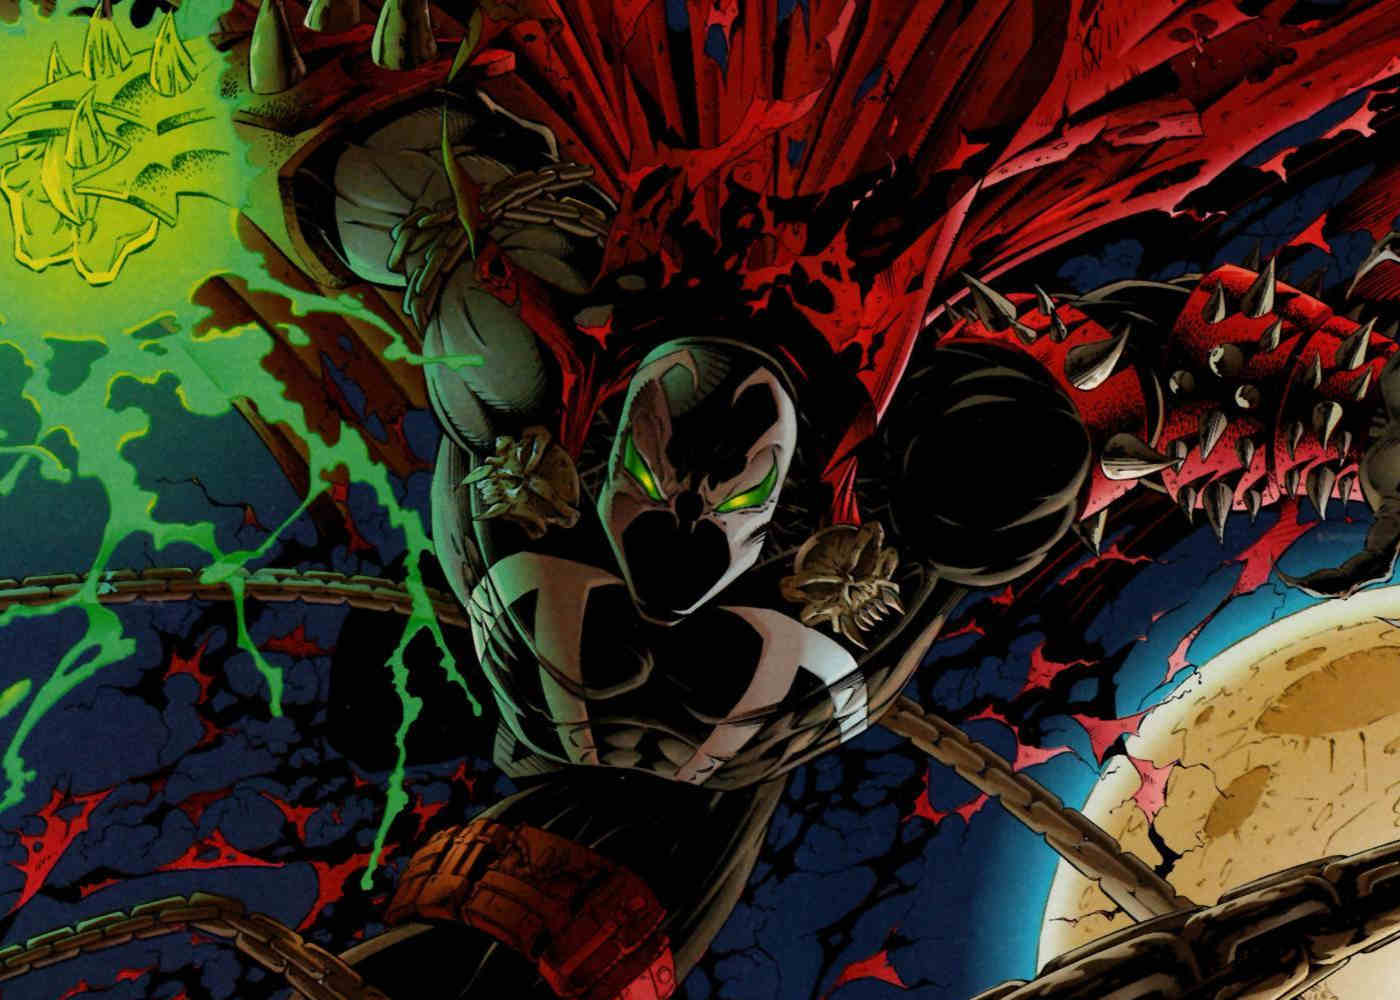 Todd McFarlane Has Finished the Spawn Movie Script